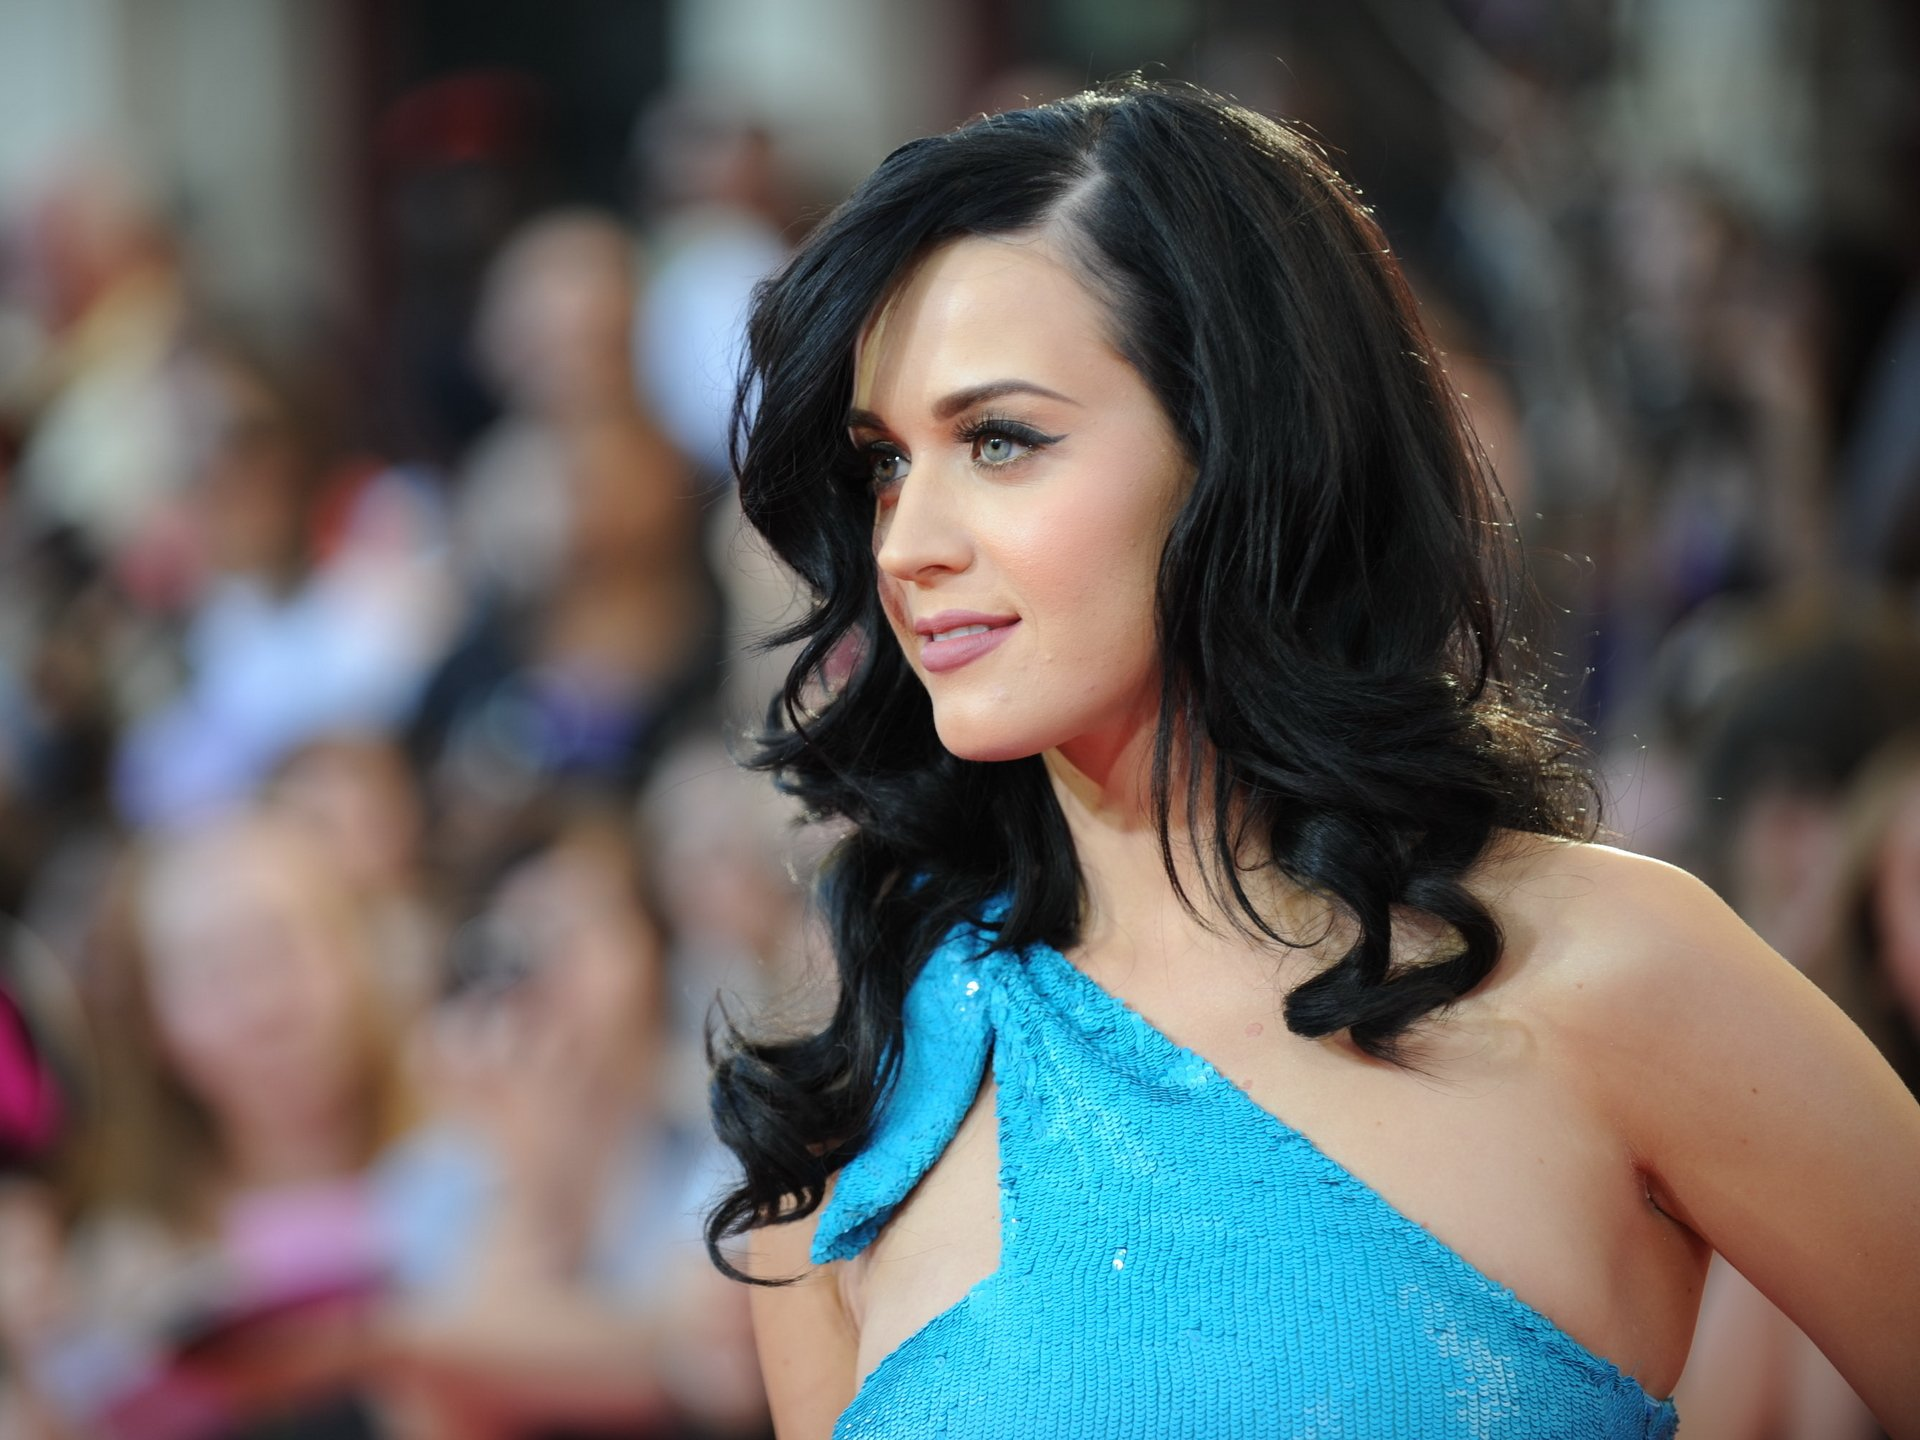 Wallpaper iphone katy perry - Hd Wallpaper Background Id 300706 1920x1440 Music Katy Perry 38 Like Favorite